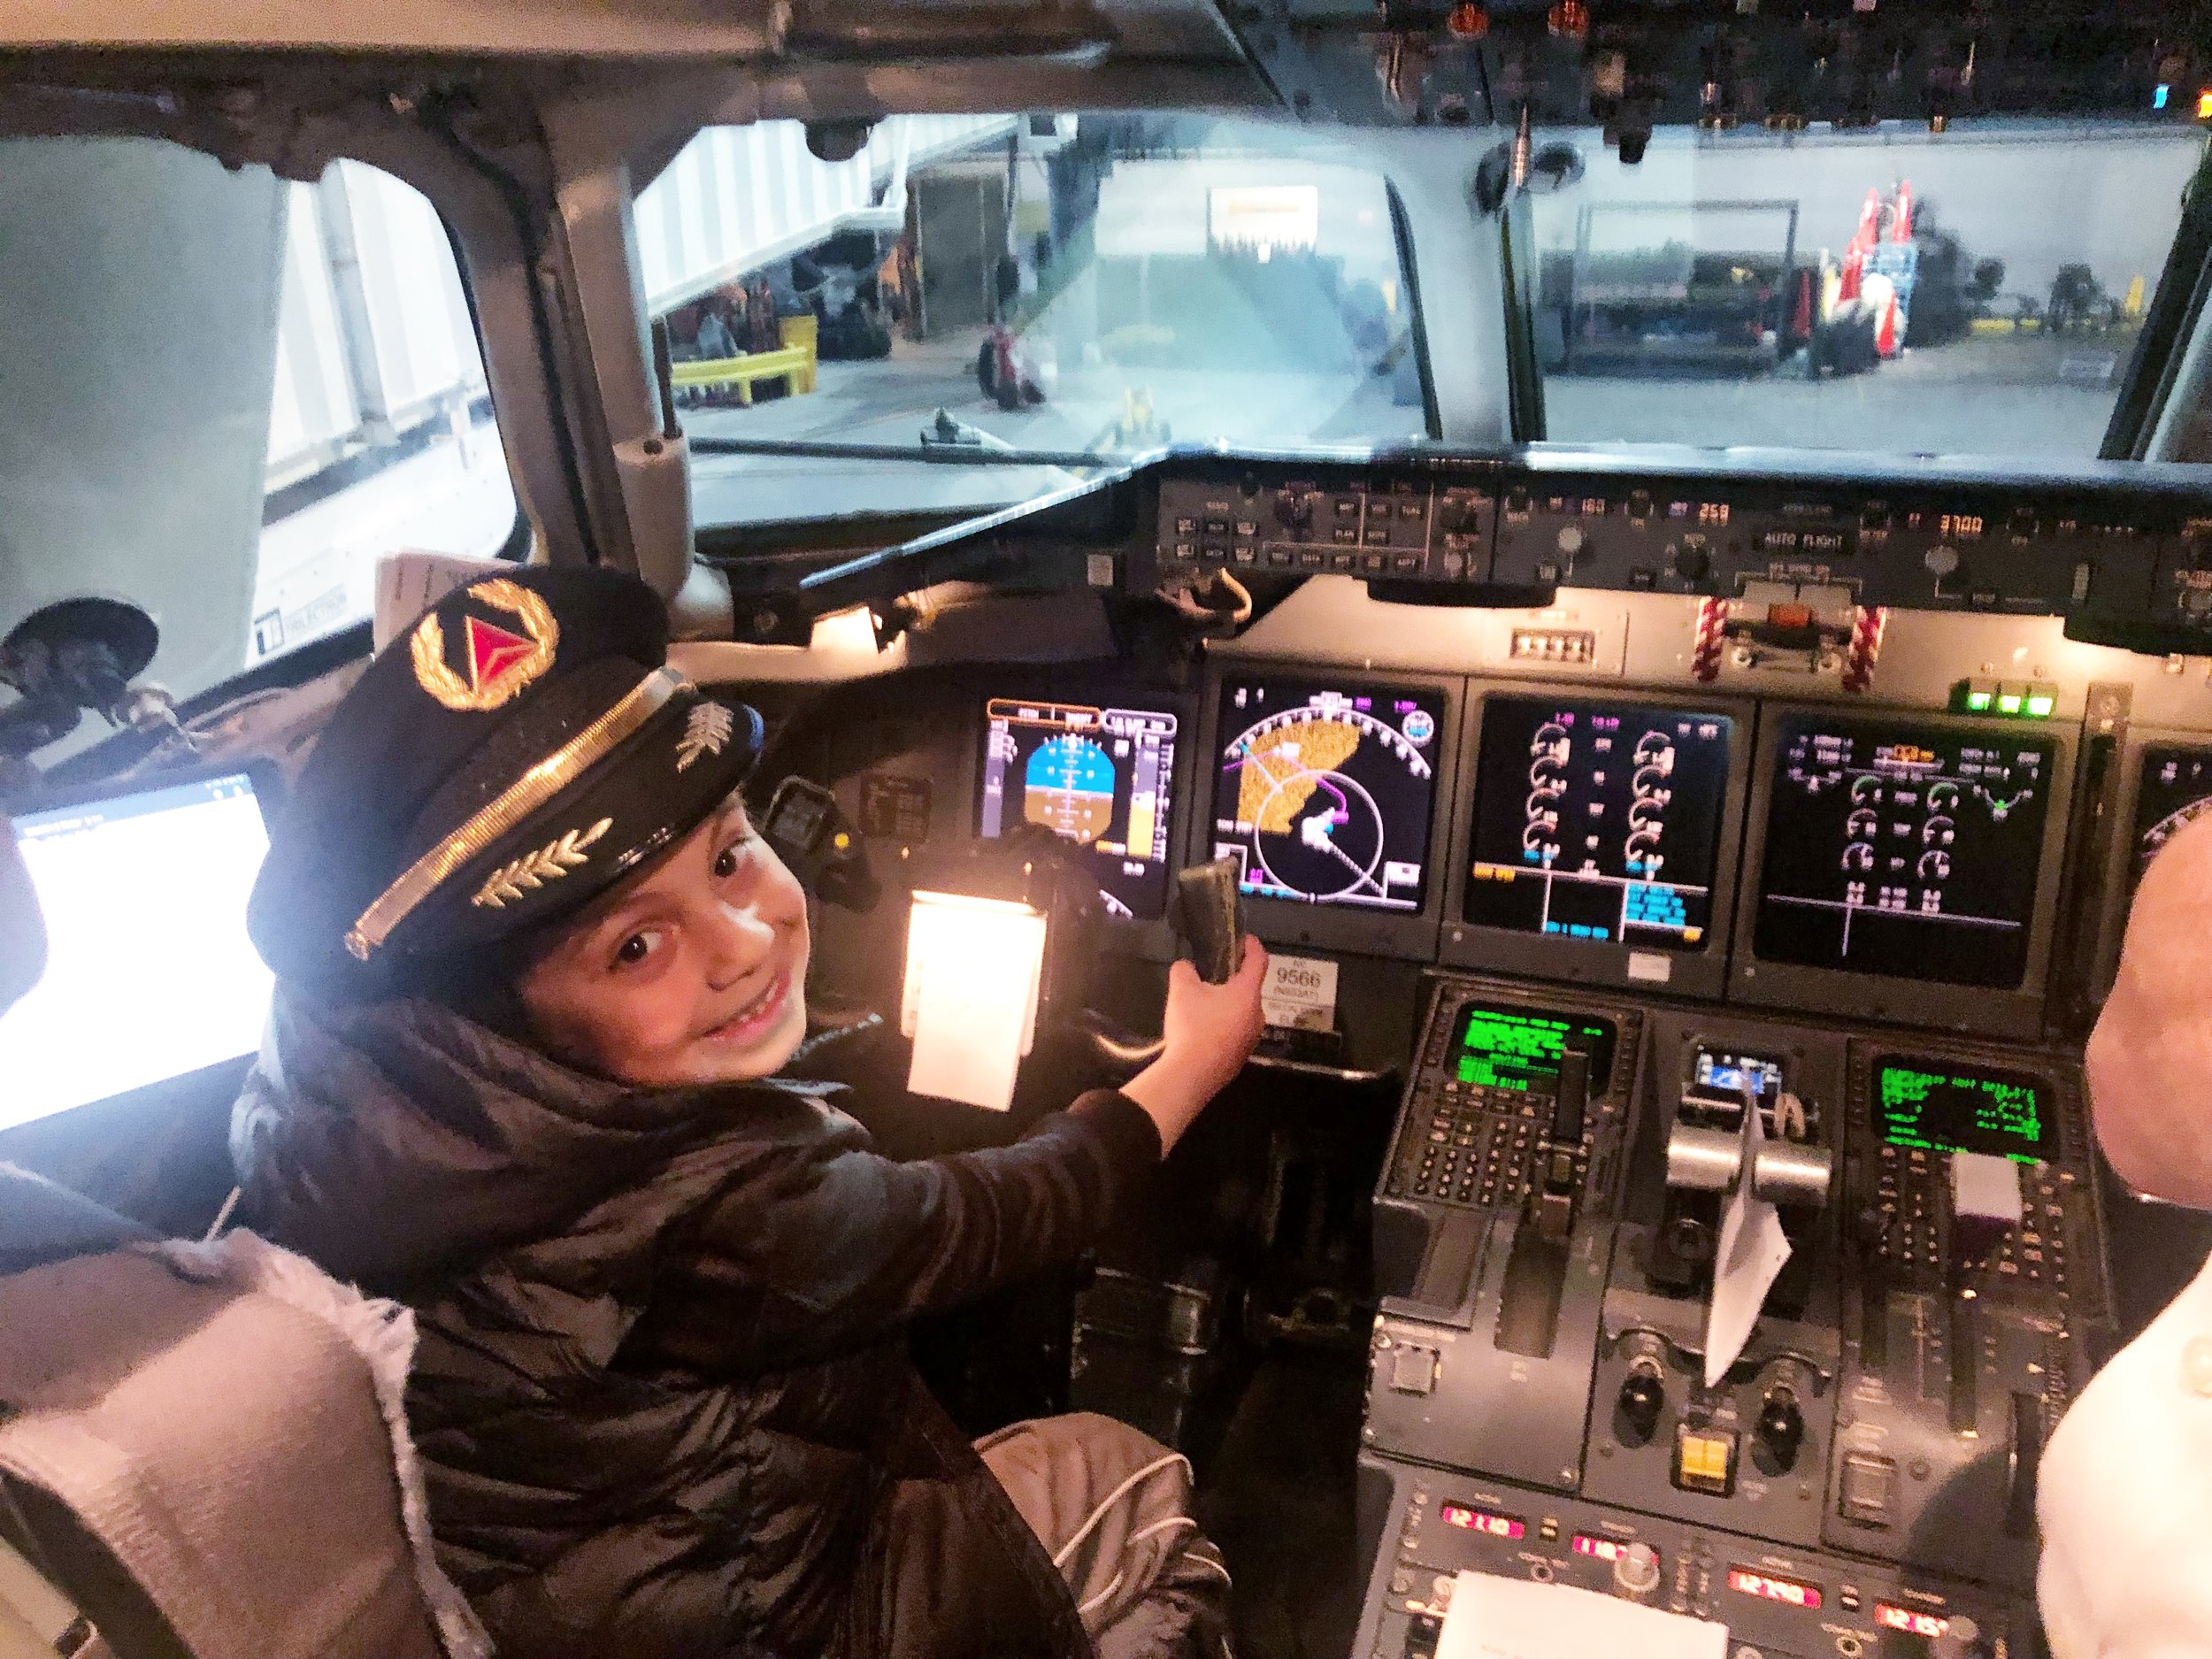 Benny enjoys a tour of the cockpit with a special opportunity to take the Captain's seat.